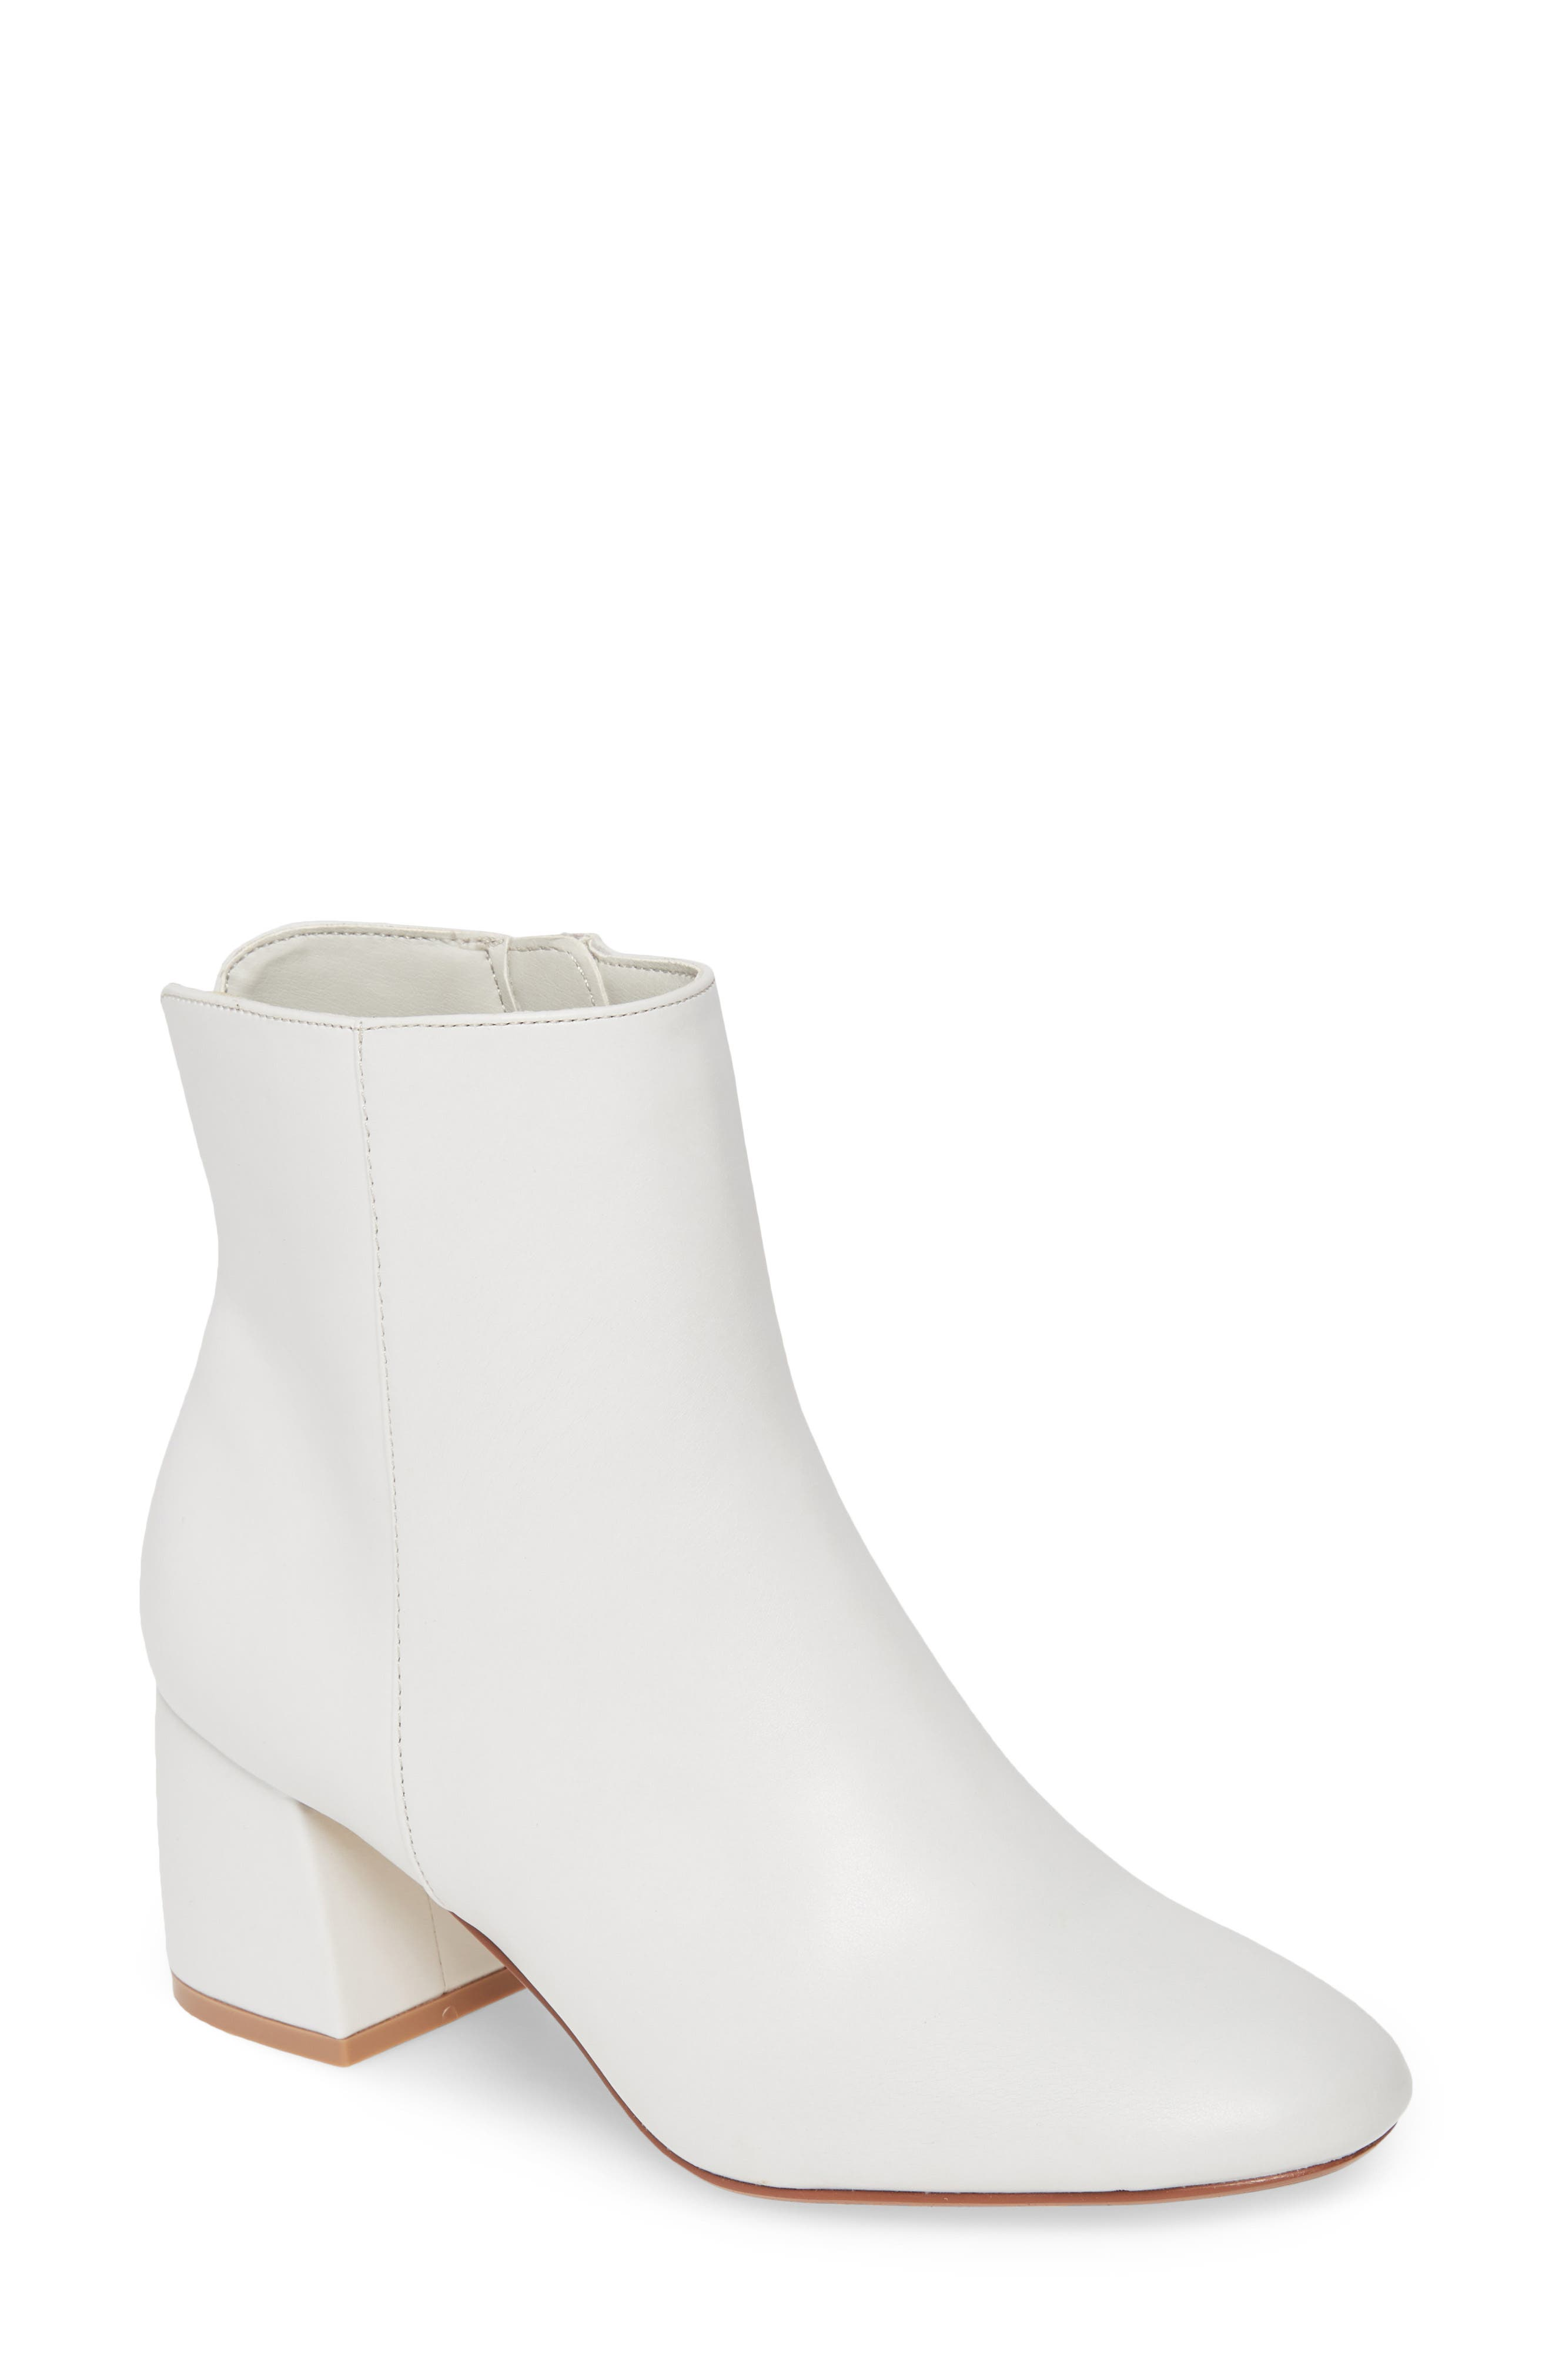 Women's Ivory Booties \u0026 Ankle Boots